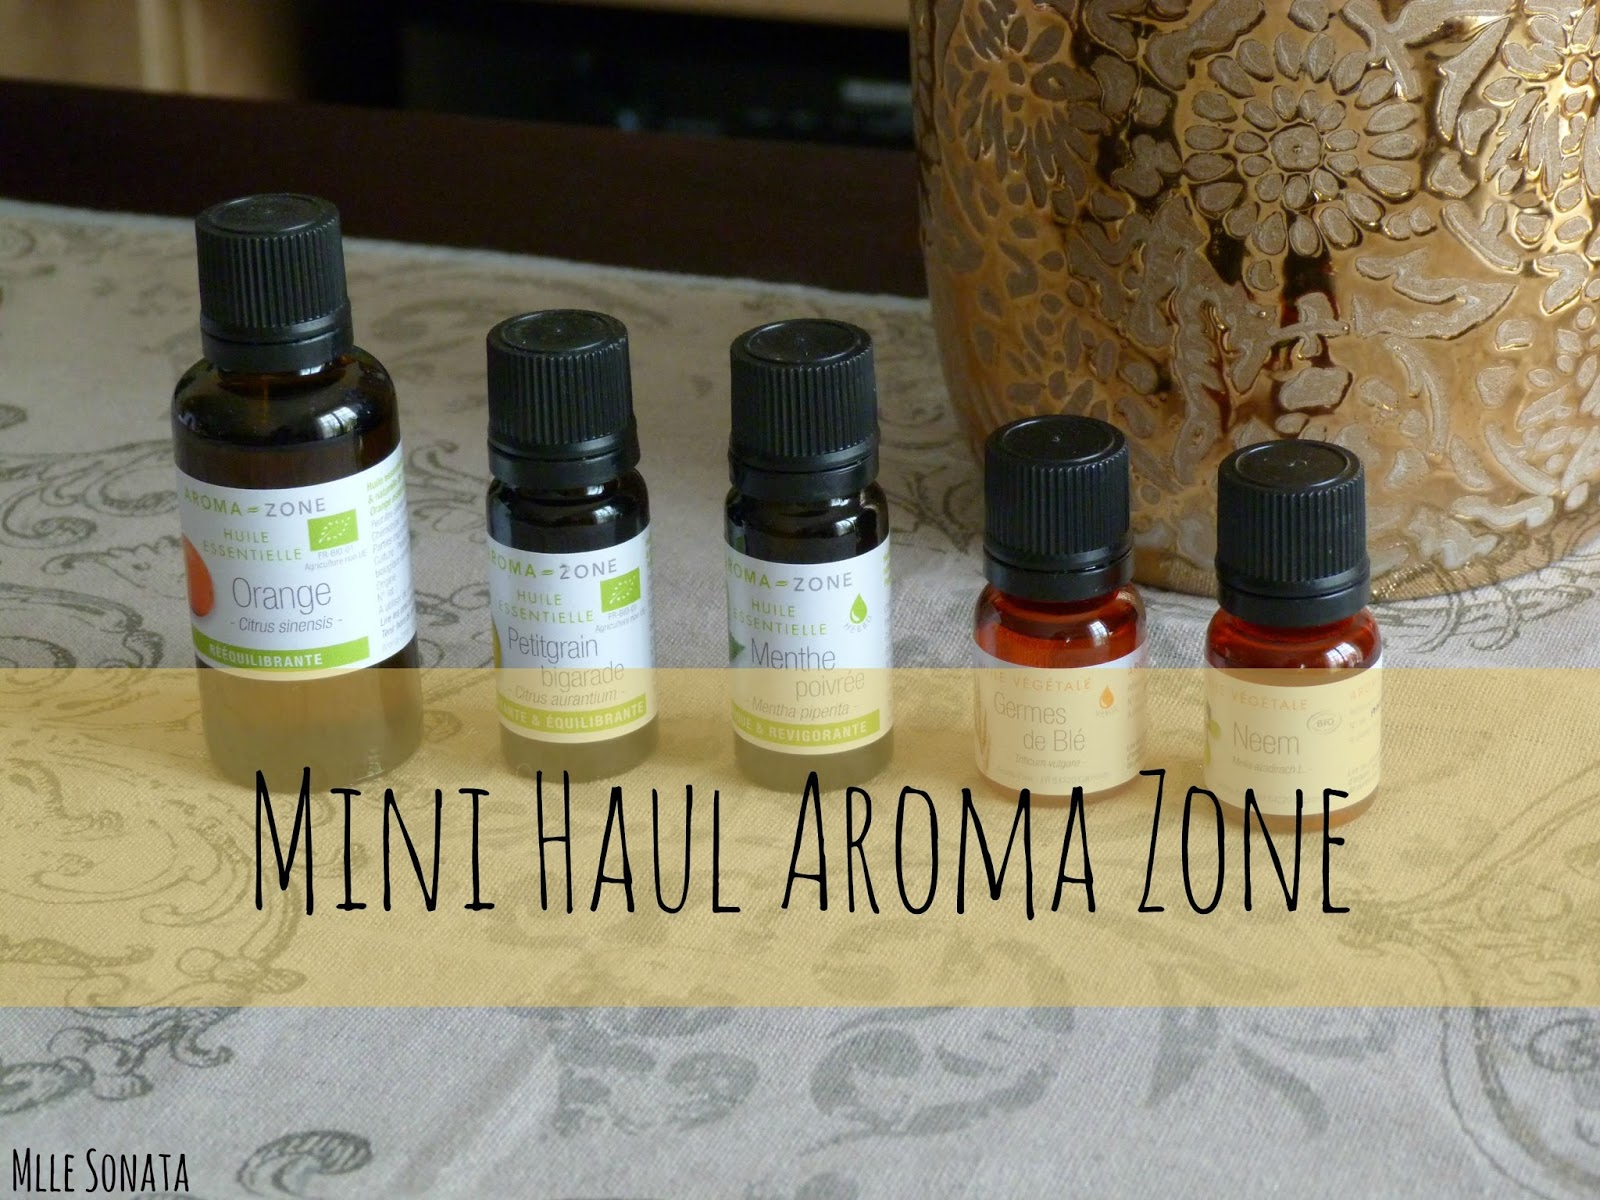 haul aroma zone huiles essentielles et v g tales mlle sonata le blog. Black Bedroom Furniture Sets. Home Design Ideas